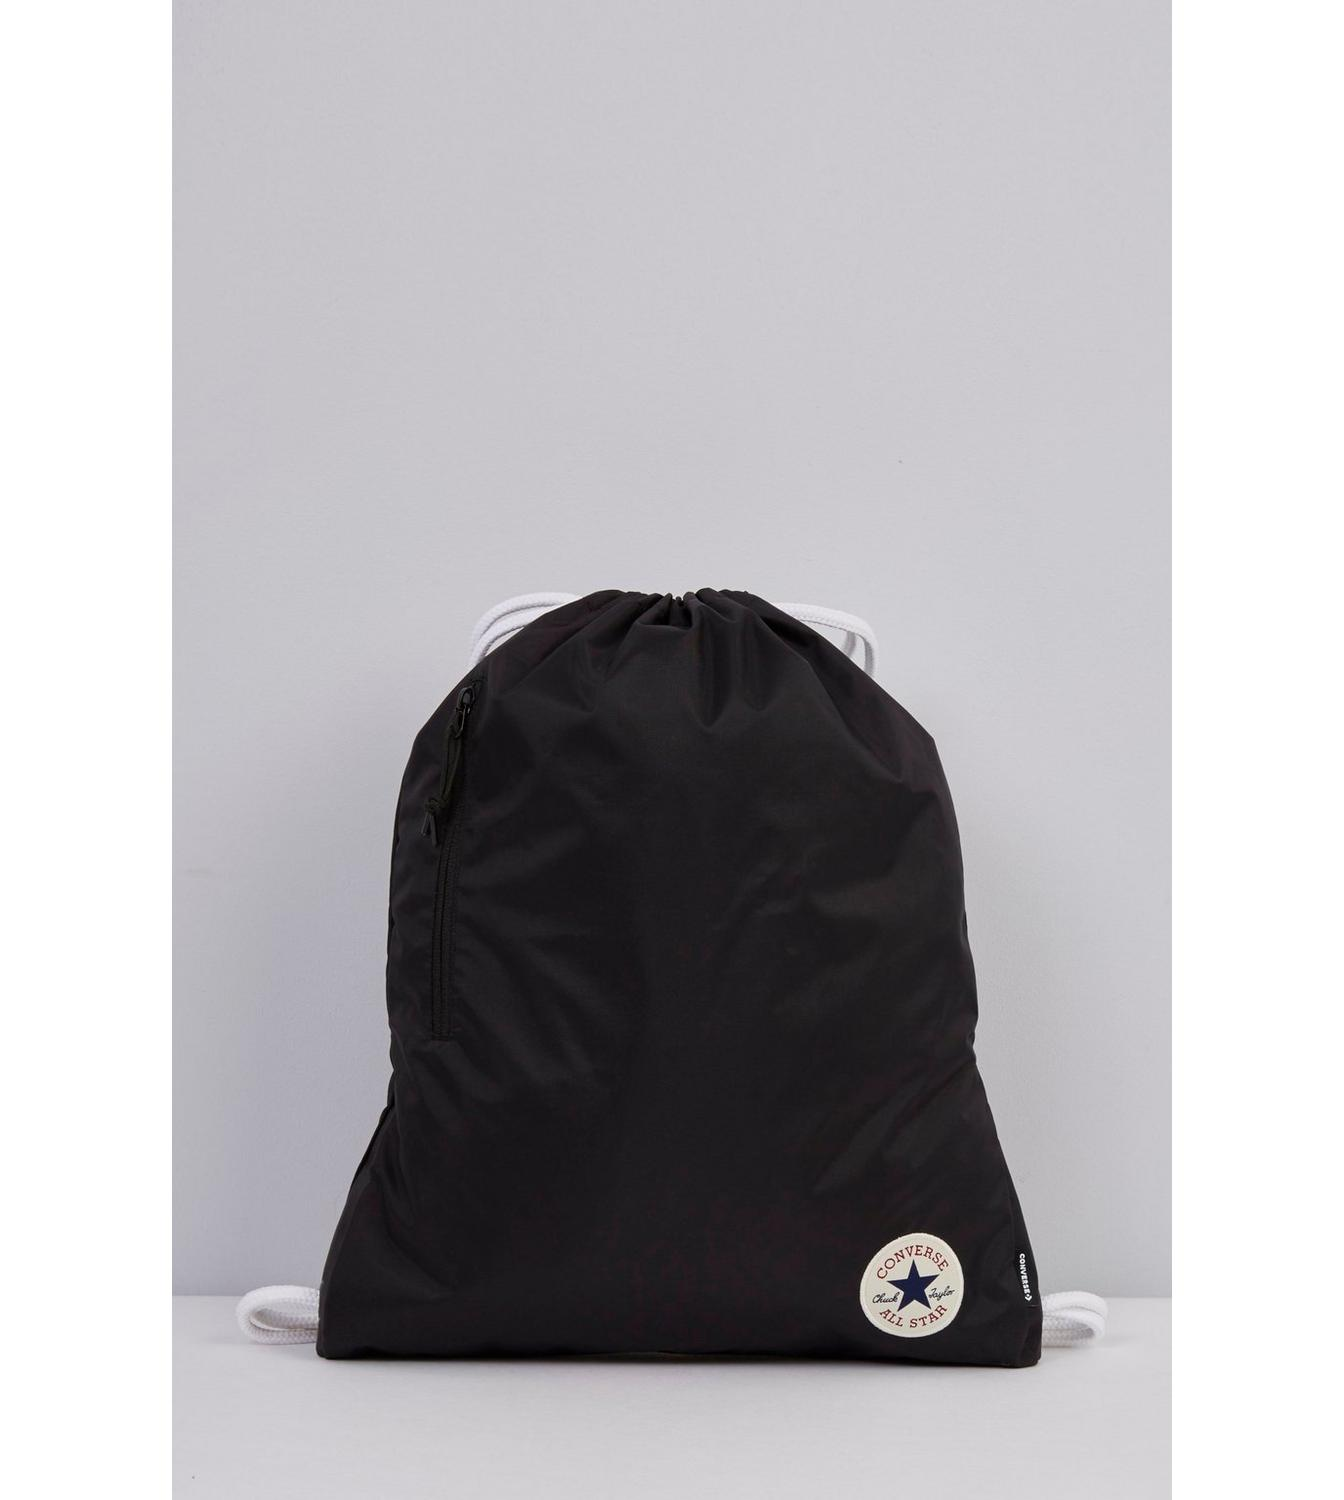 Image for Converse Cinch Bag from studio 2a174e979ff92